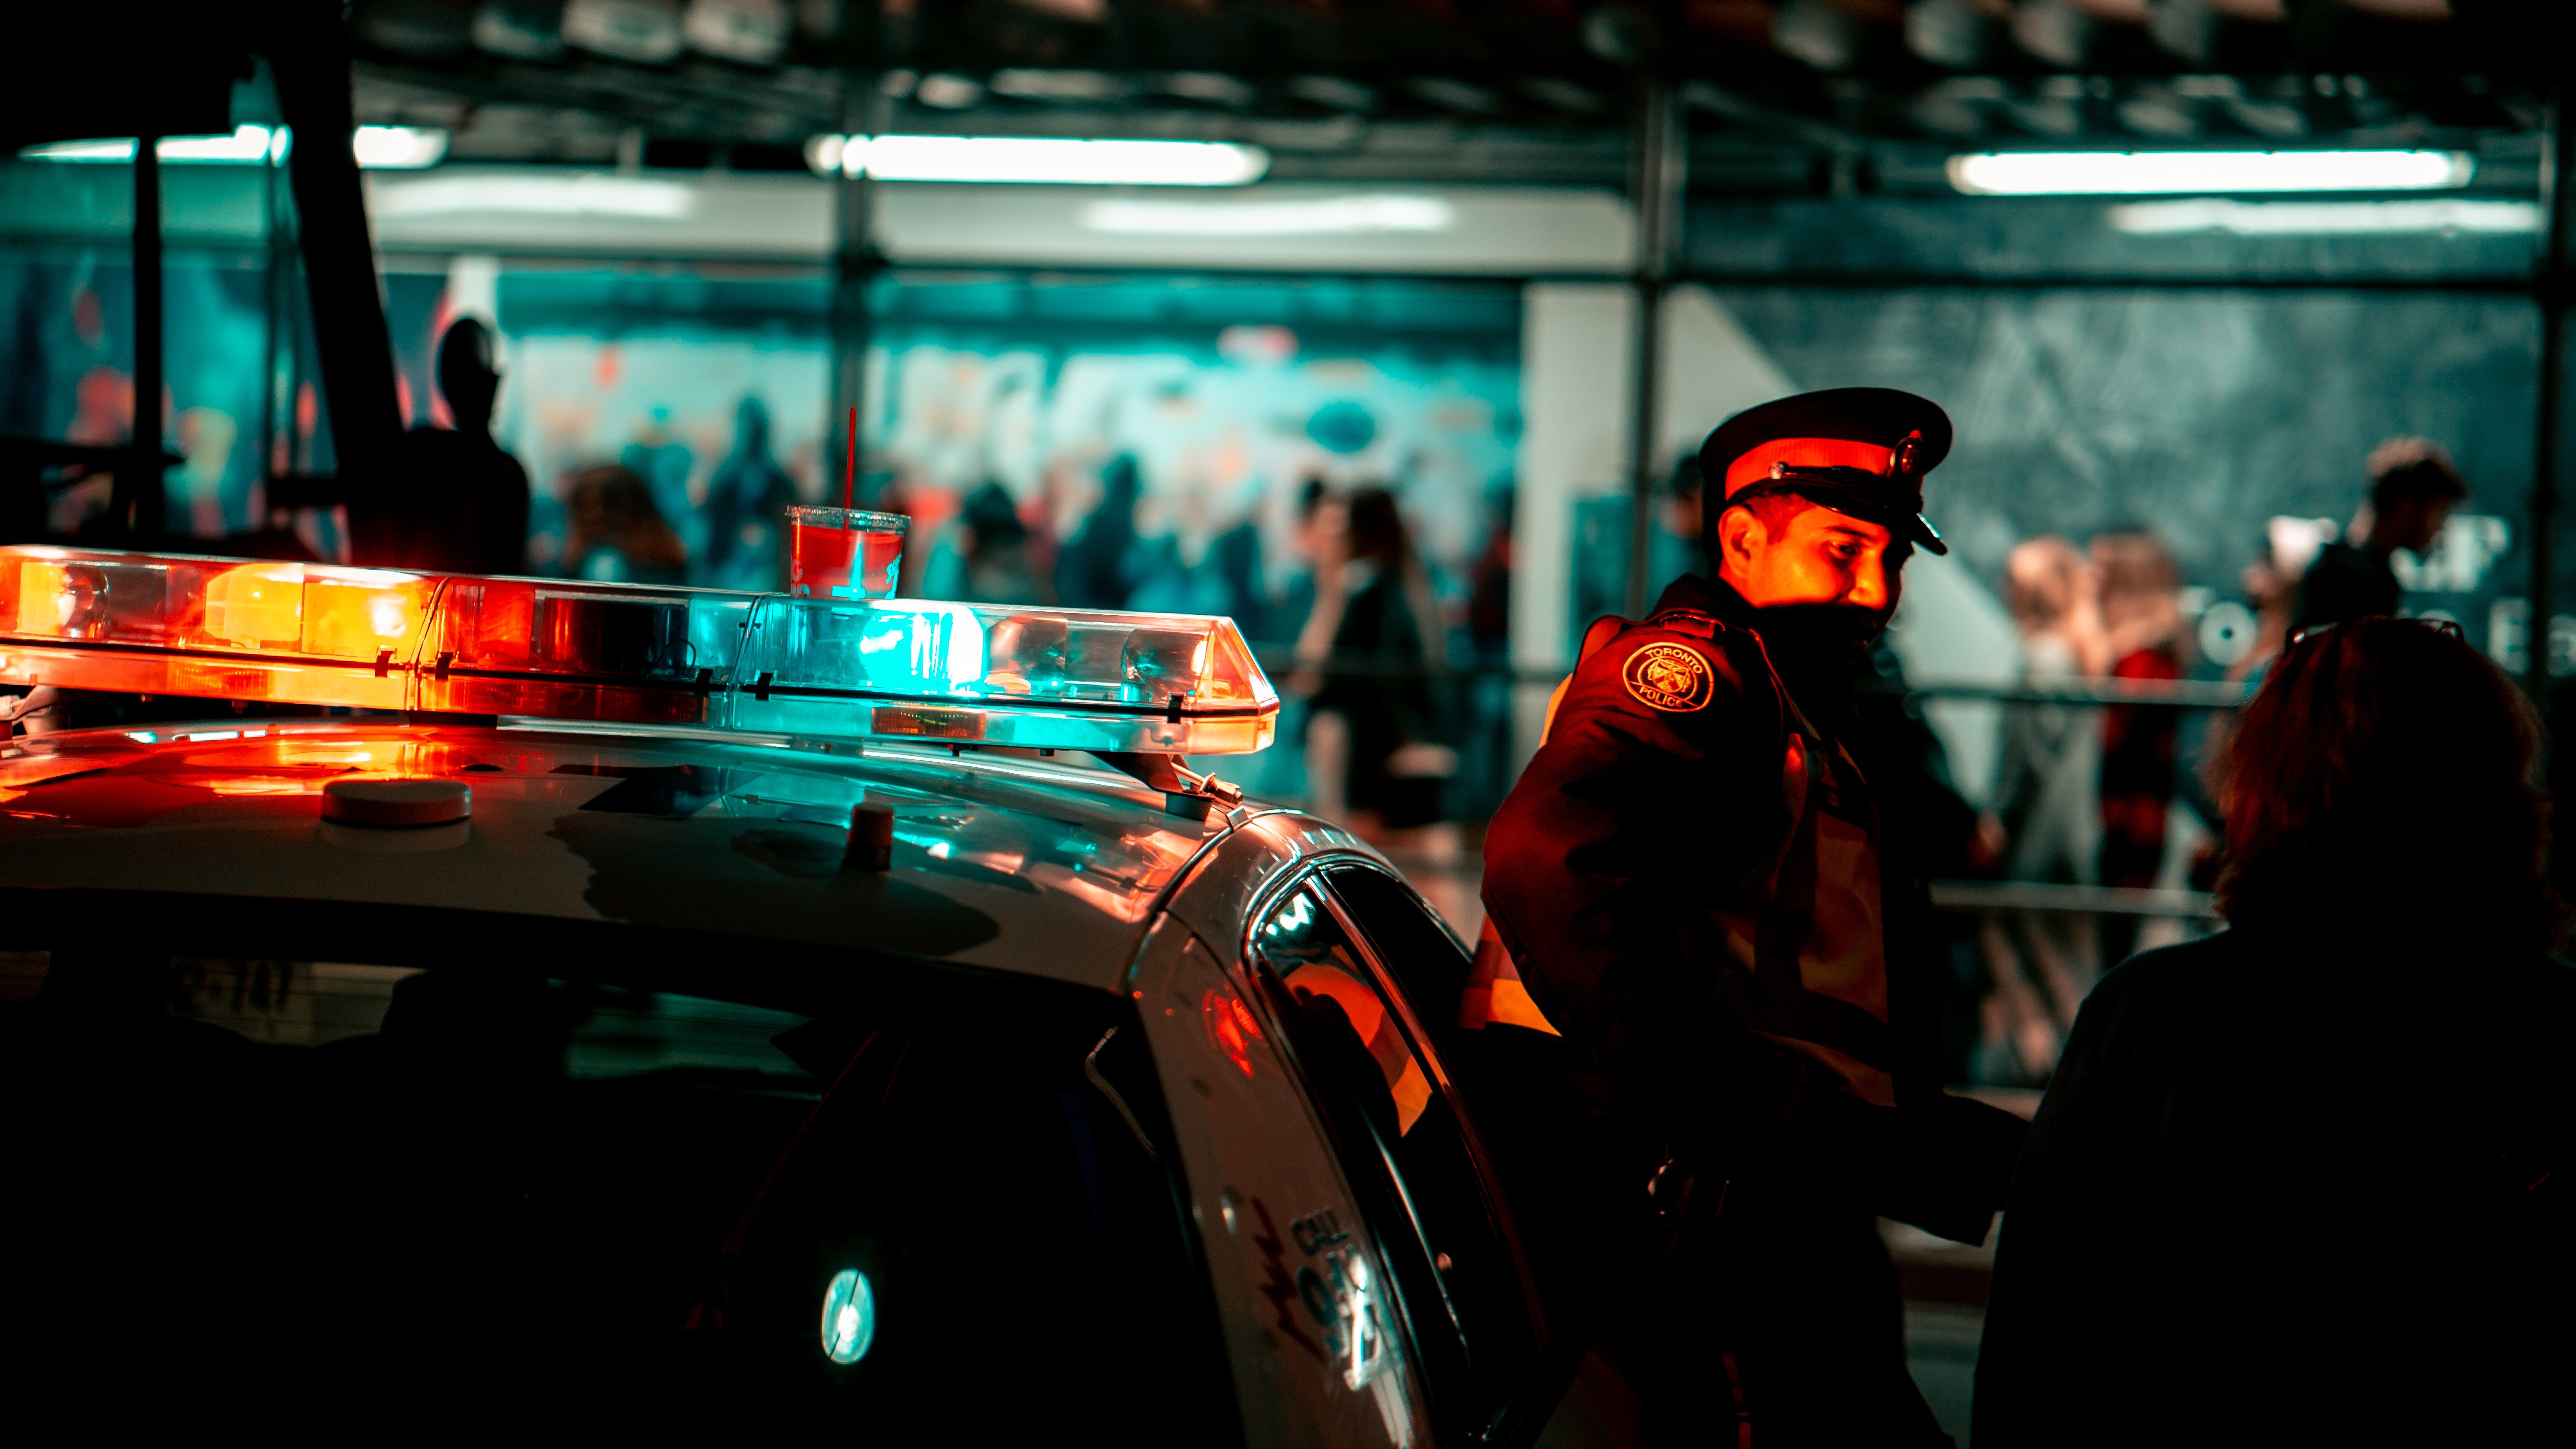 A police officer stands alongside his patrol car | Photo: Pexels/Sunyu Kim